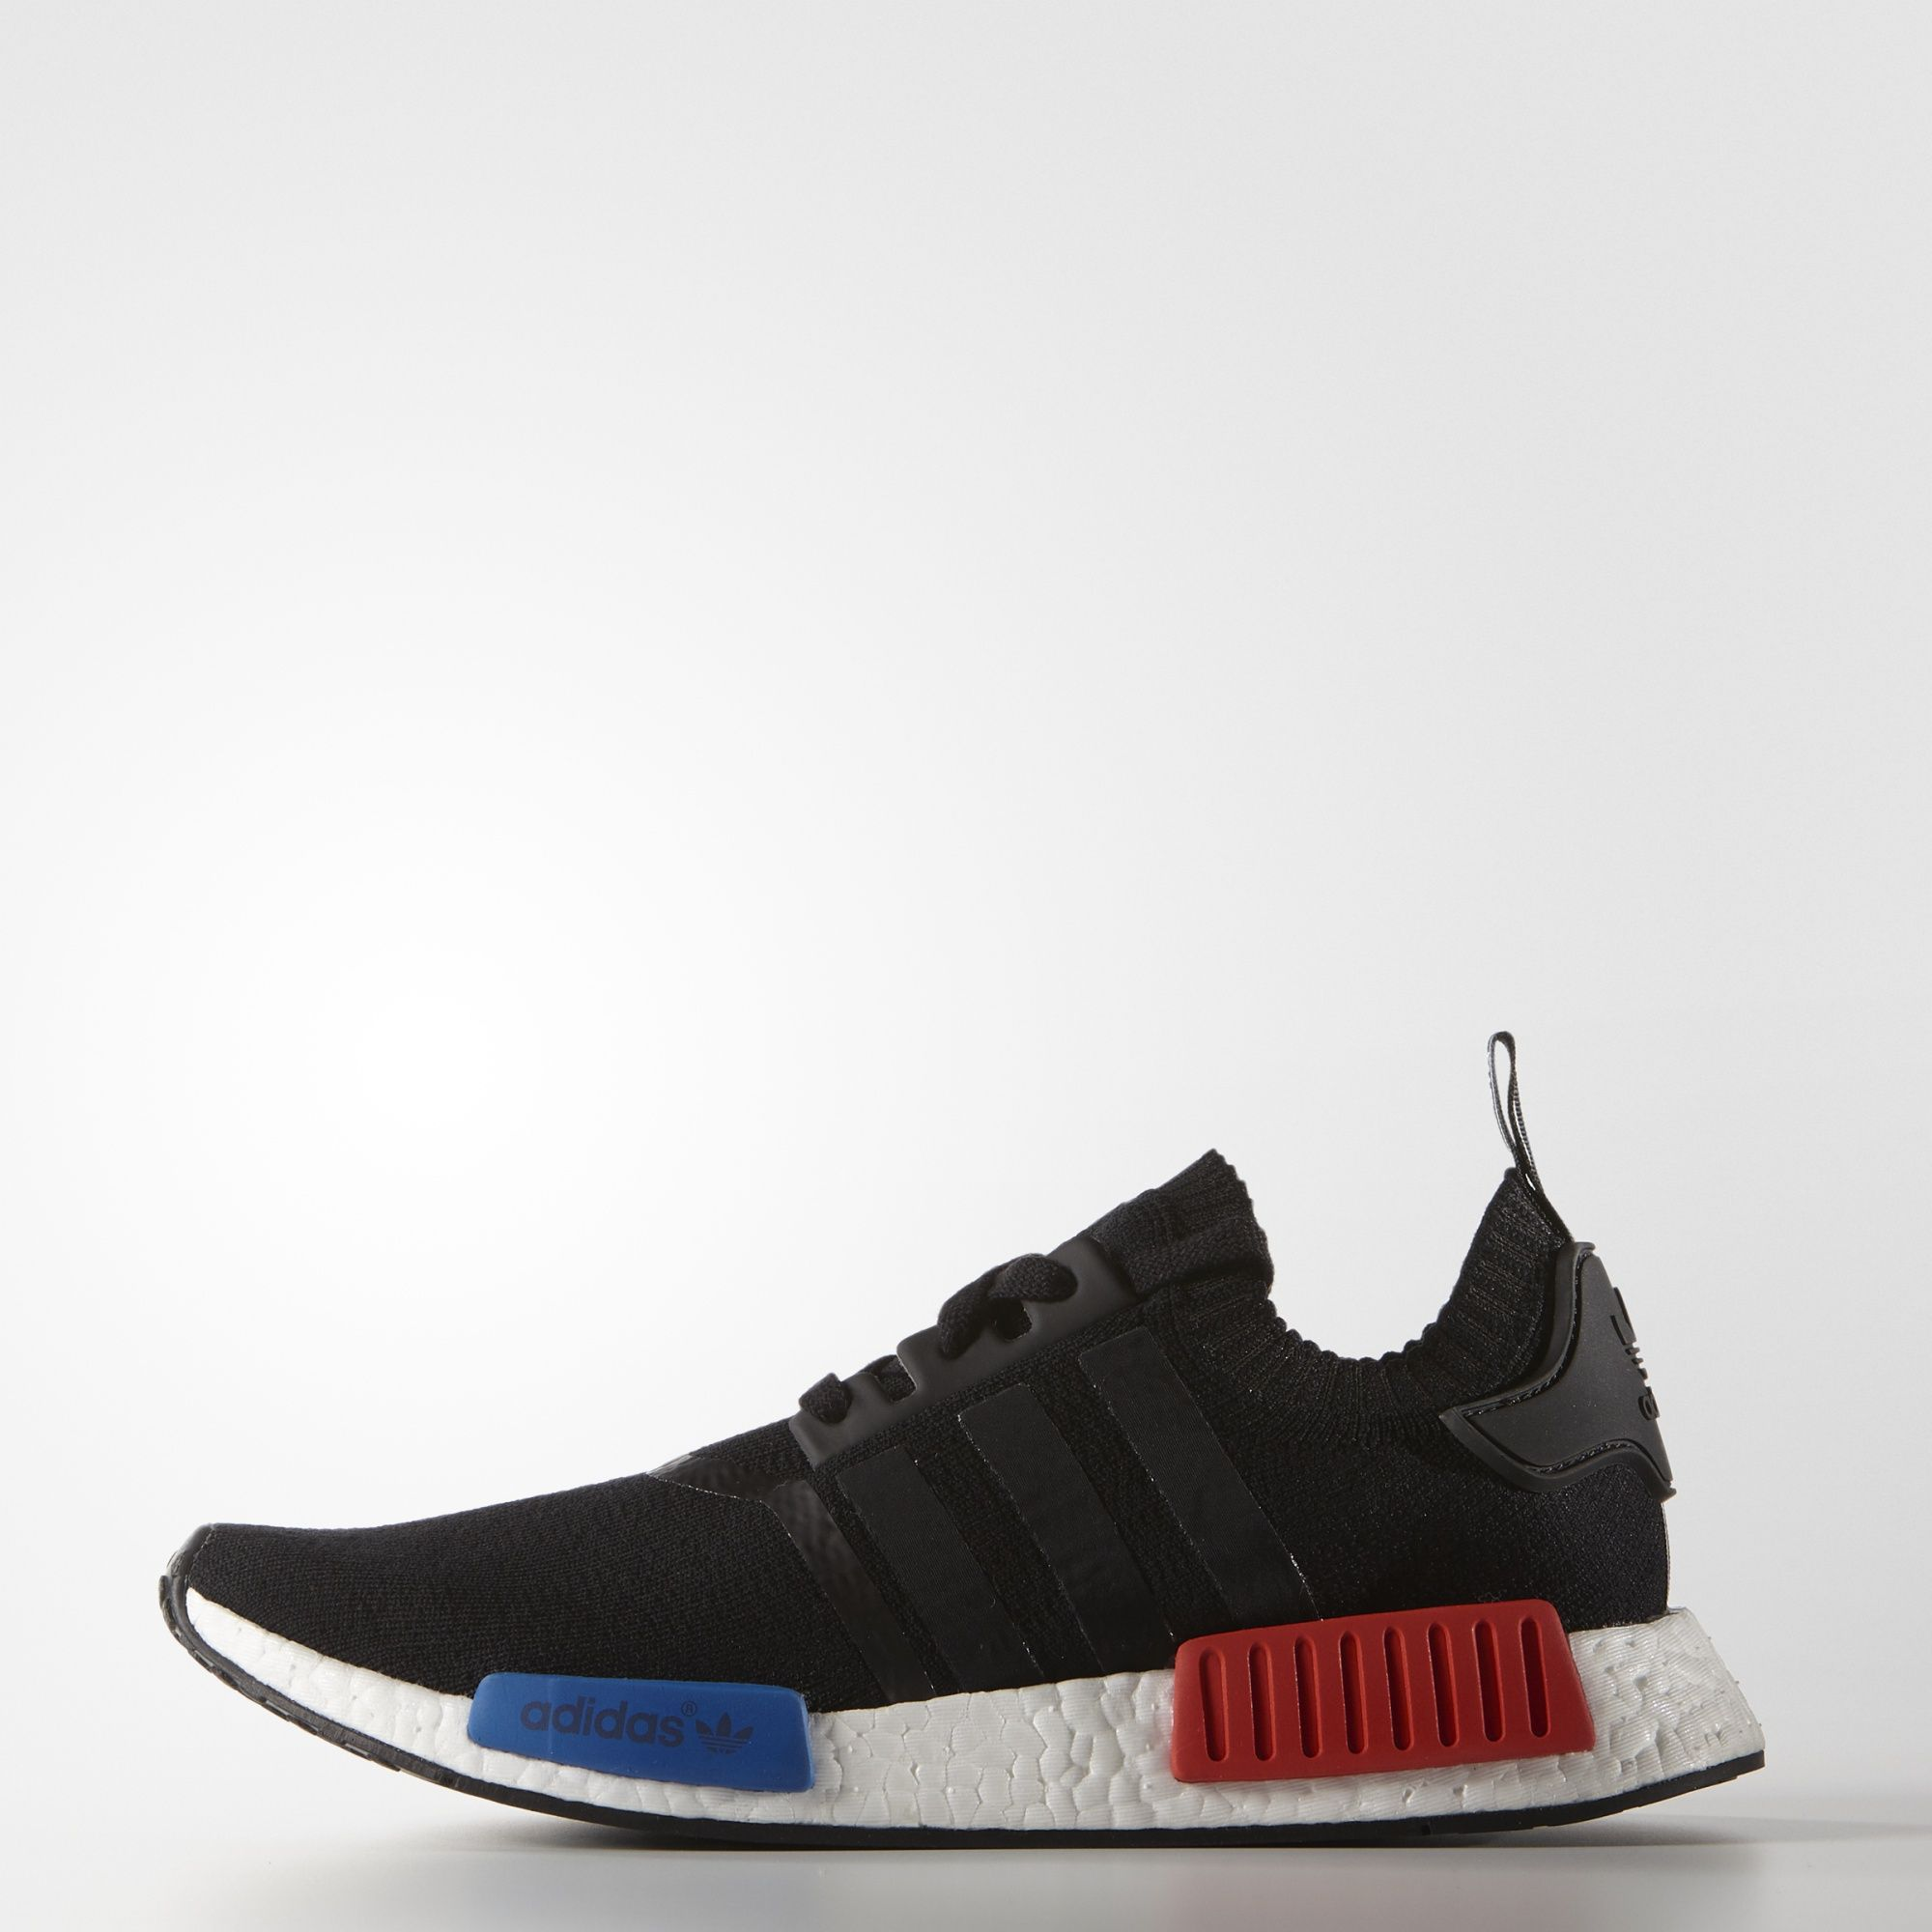 Footwear · adidas NMD Runner Primeknit Shoes - Black ...